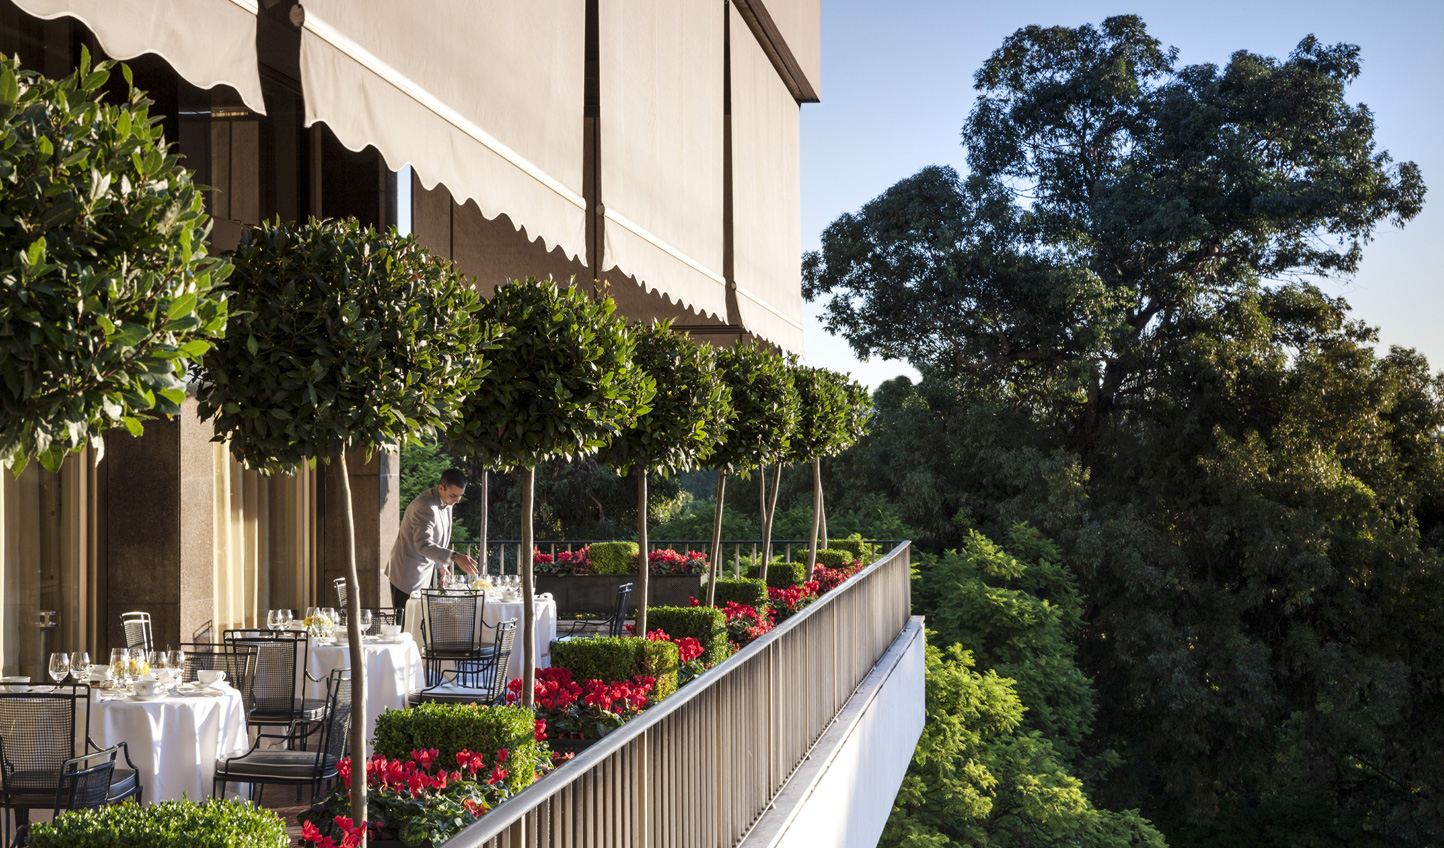 Live the lap of luxury at Four Seasons The Ritz in Lisbon